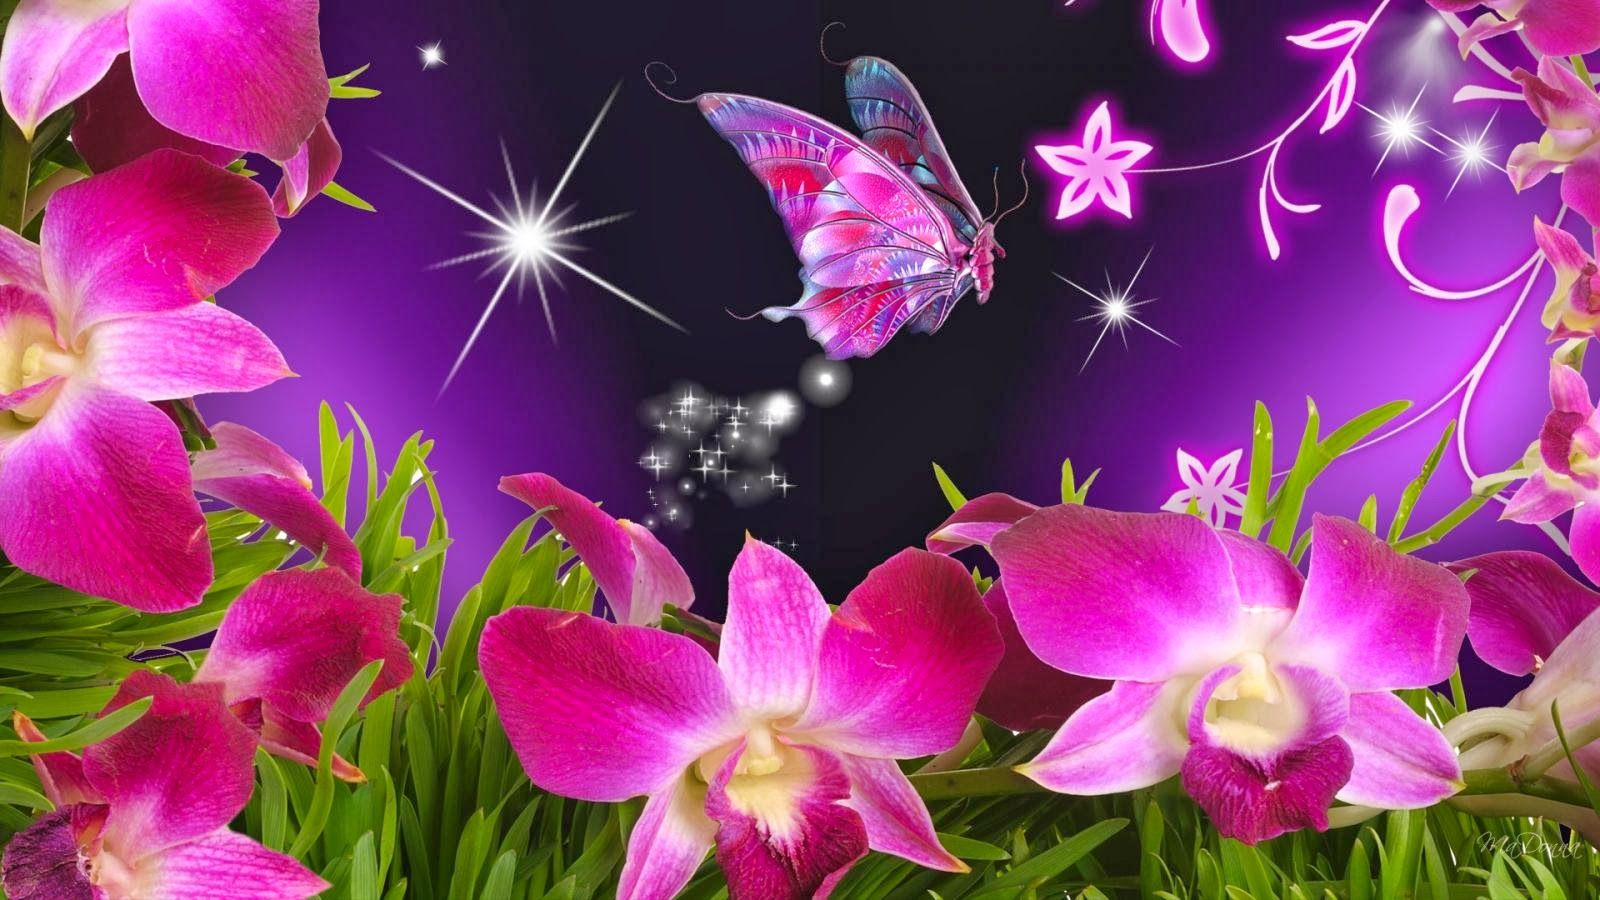 Wallpaper Flowers And Butterflies Beautiful Flowers And